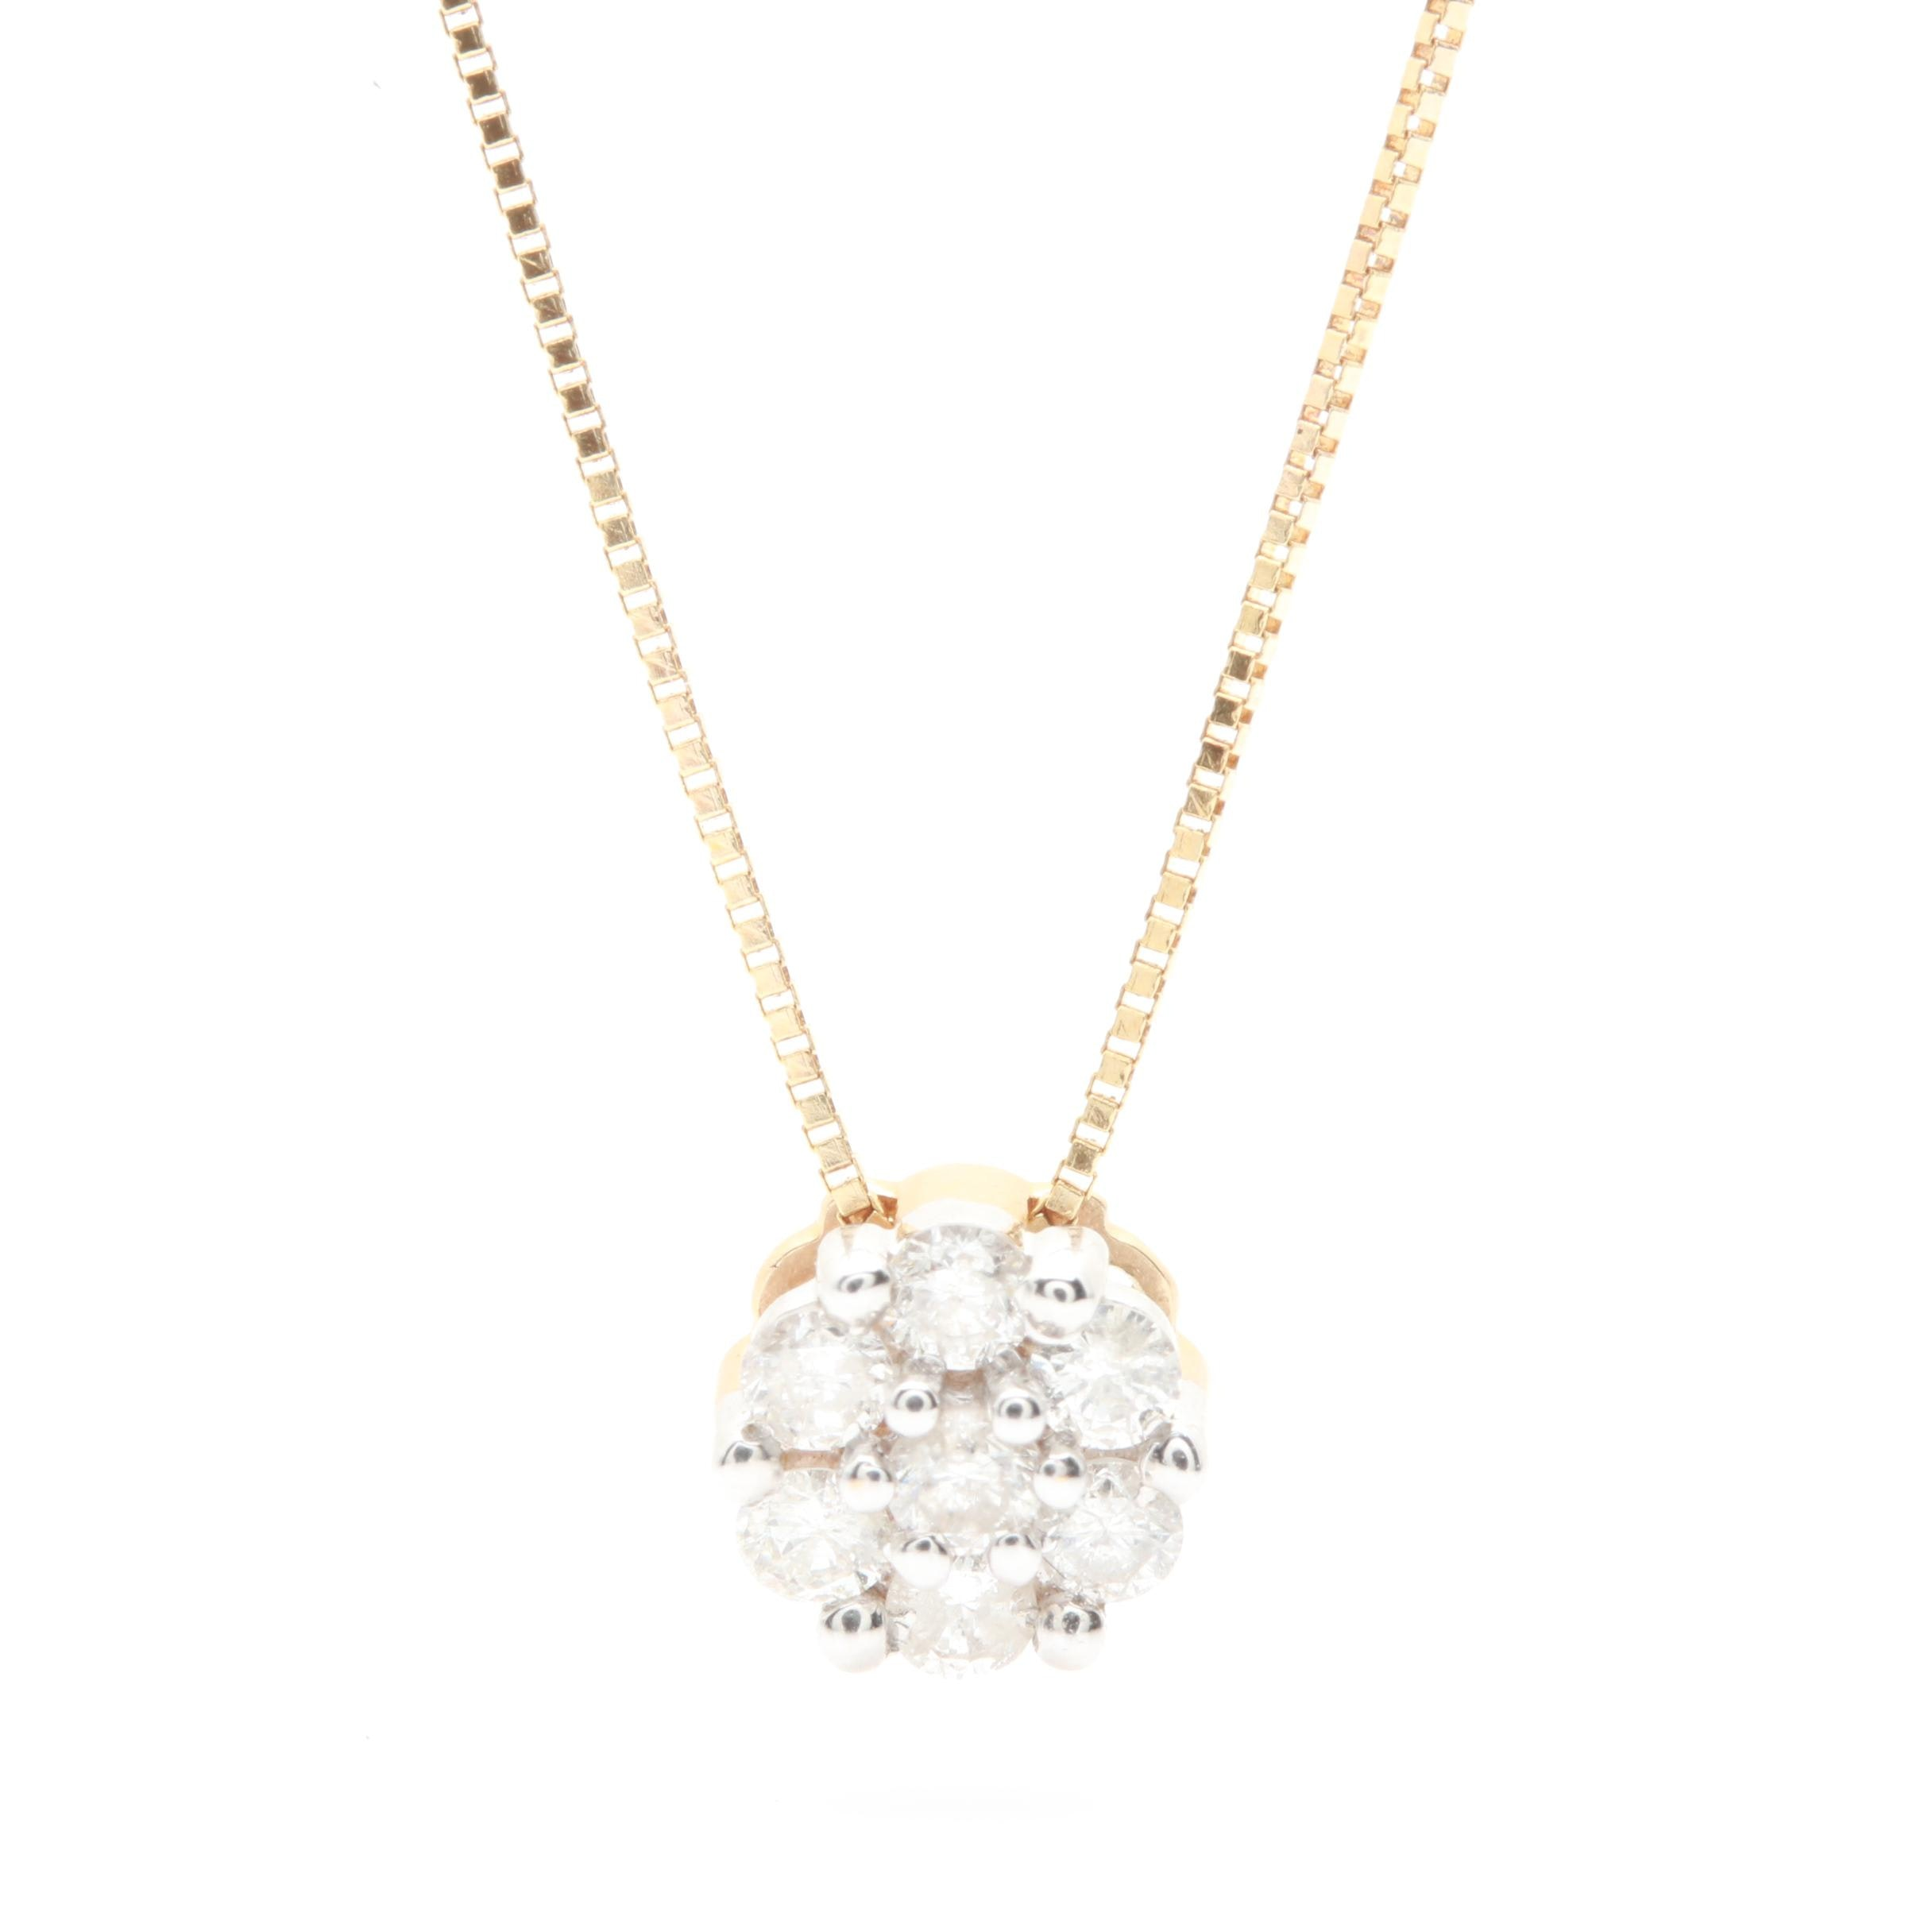 14K Yellow Gold Diamond Pendant Necklace with 14K White Gold Accents